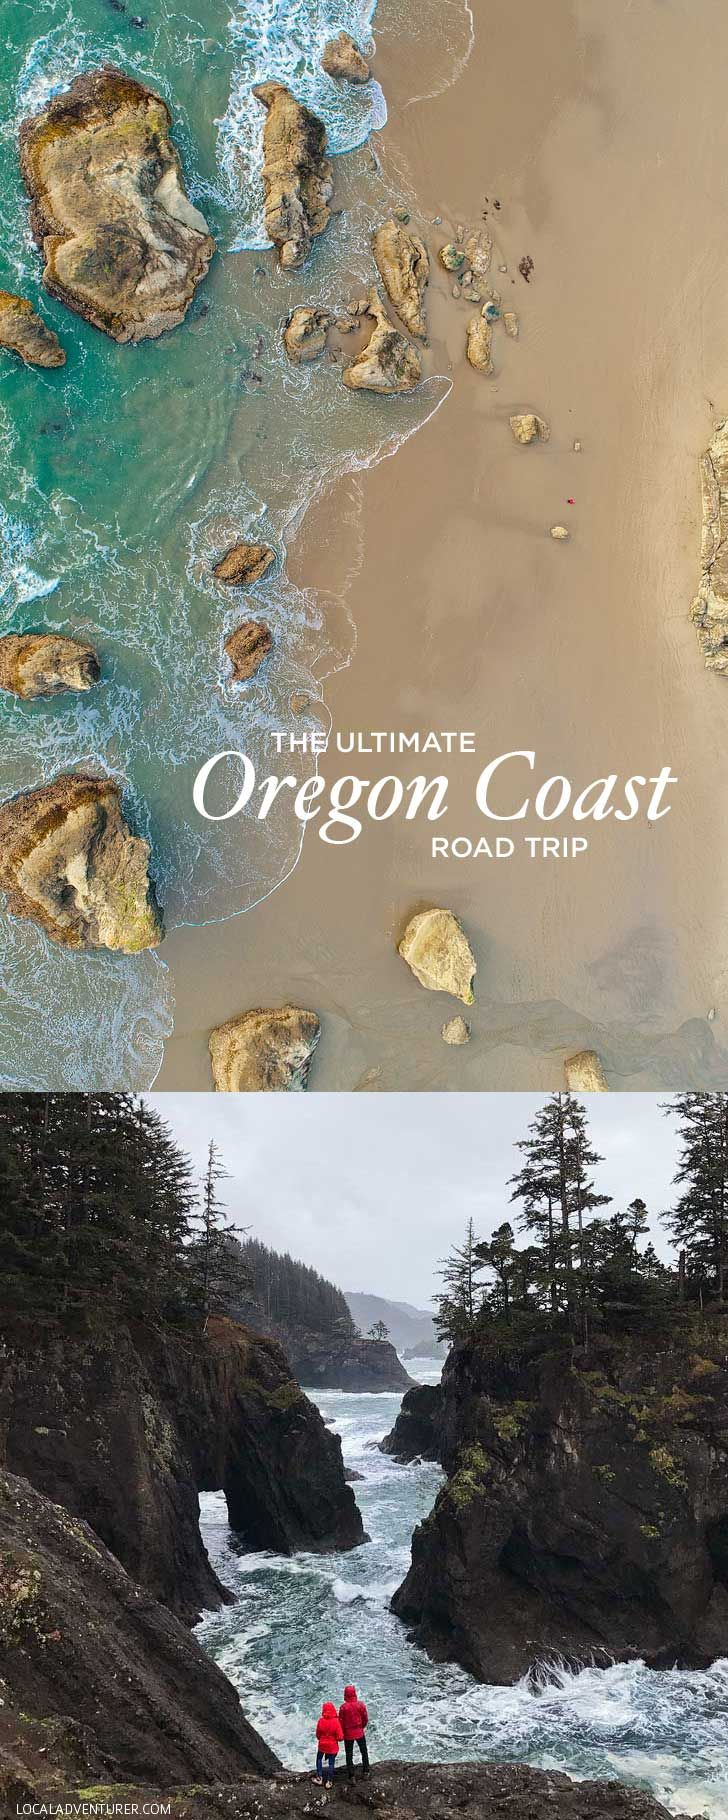 The Ultimate Oregon Coast Road Trip - All 363 Miles and All the Best Things to Do on the Oregon Coast // localadventurer.com http://amzn.to/2pu2E2D